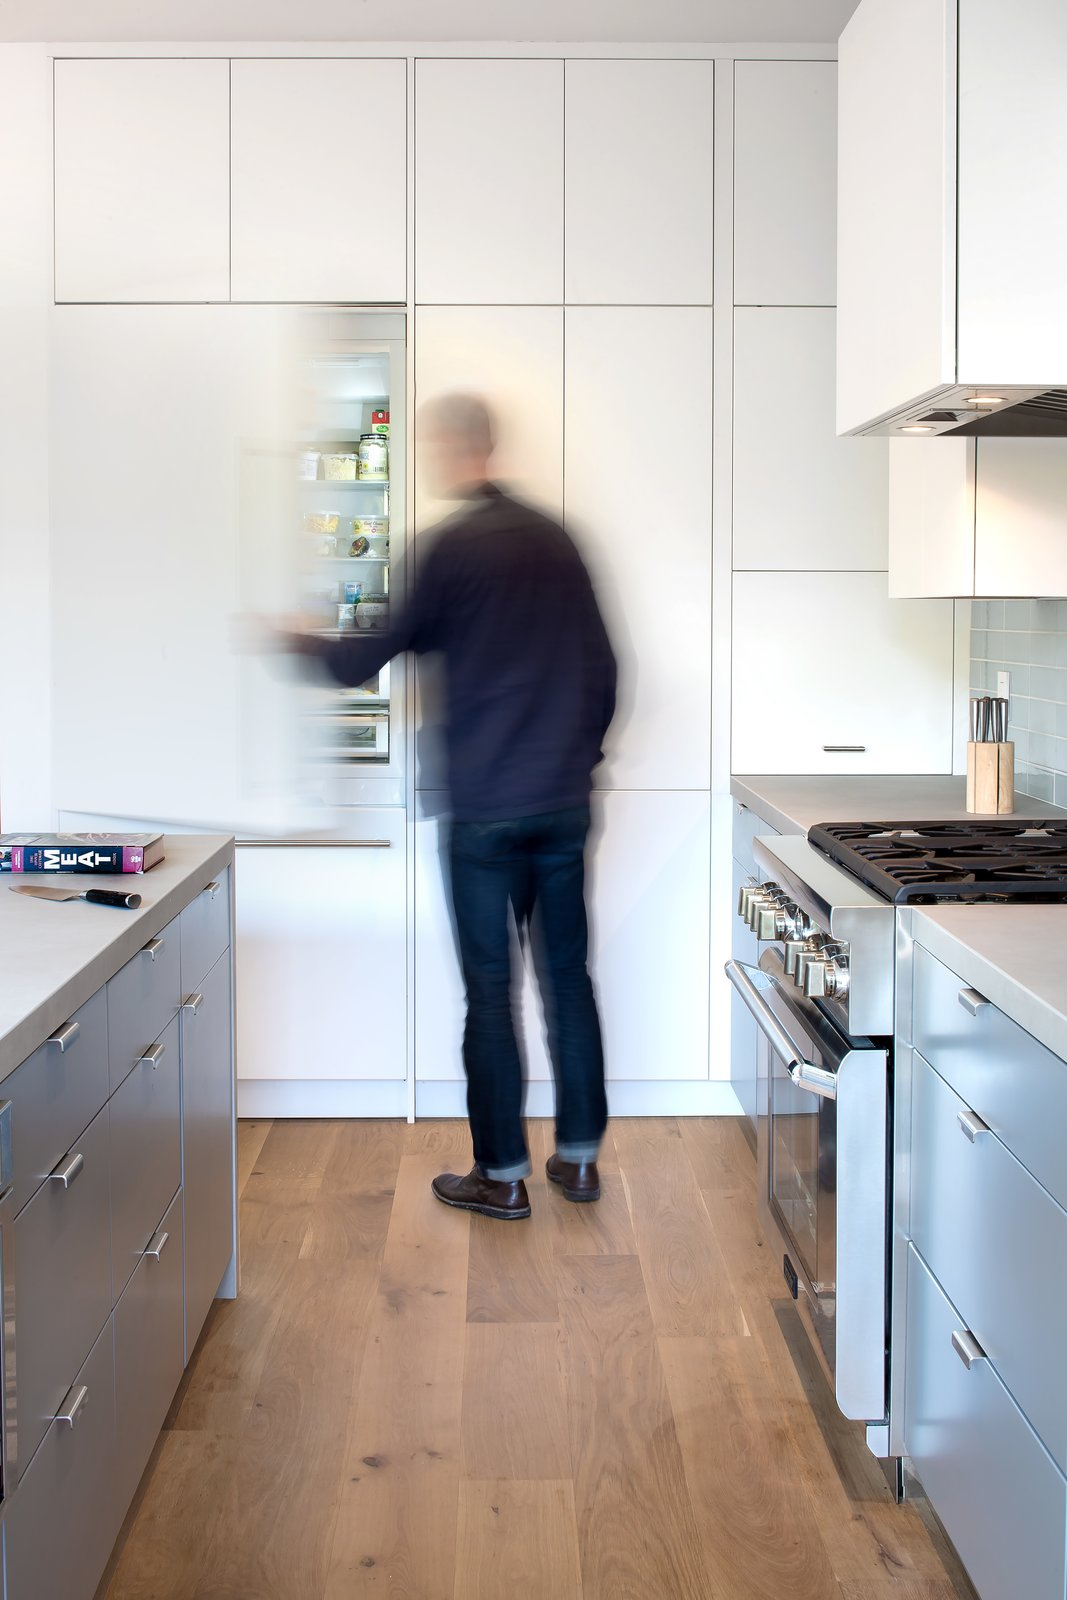 Kitchen  27th Street - Noe Valley by patrick perez/designpad architecture